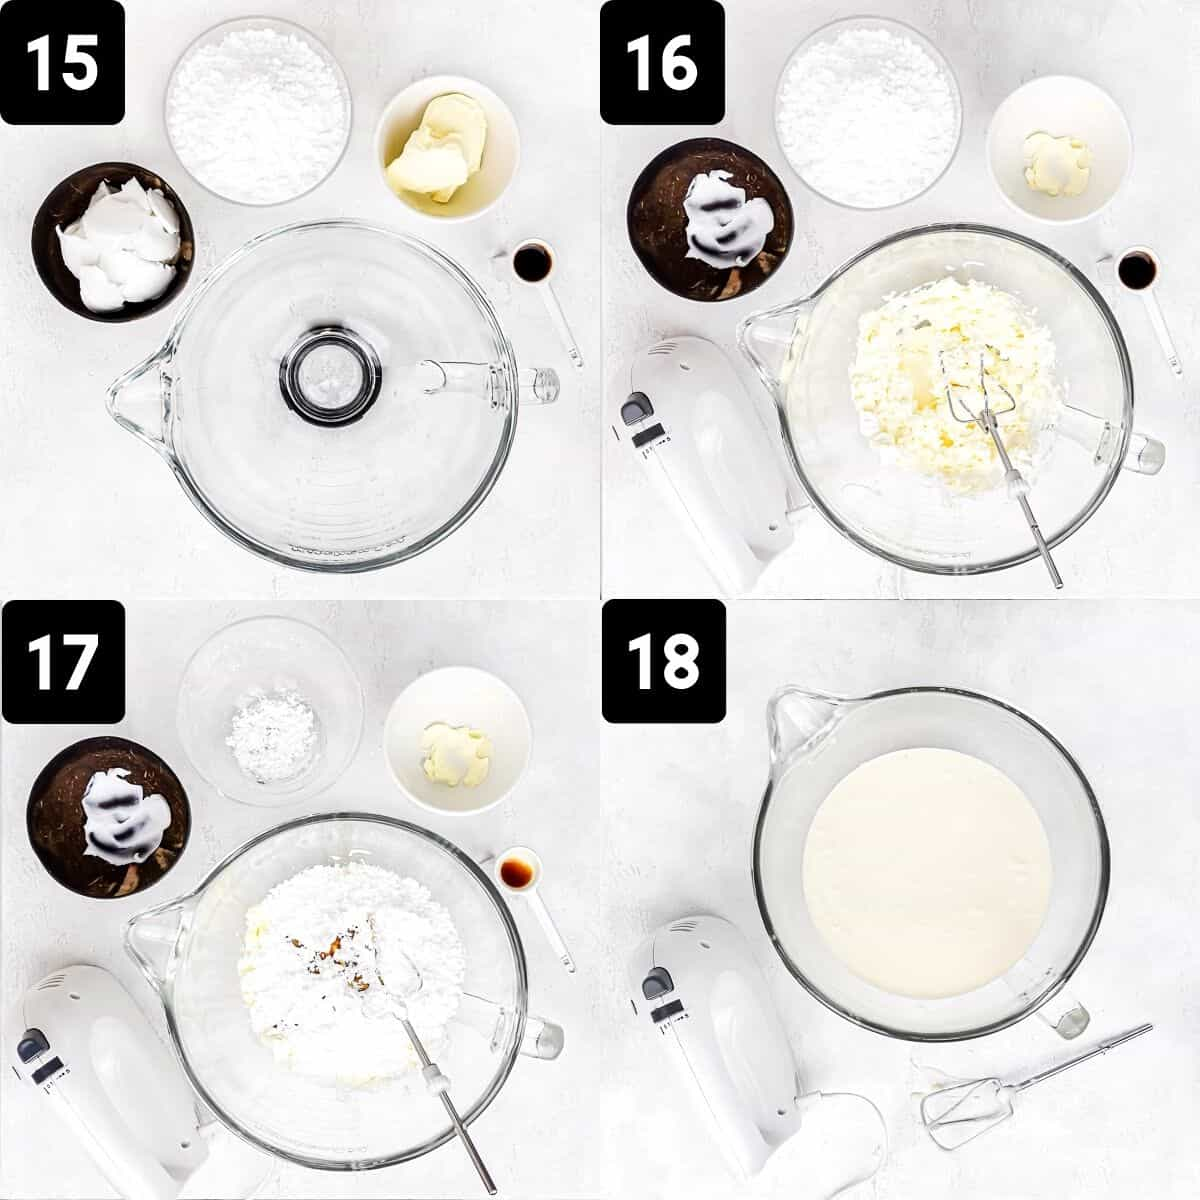 Step-by-step directions to make the frosting